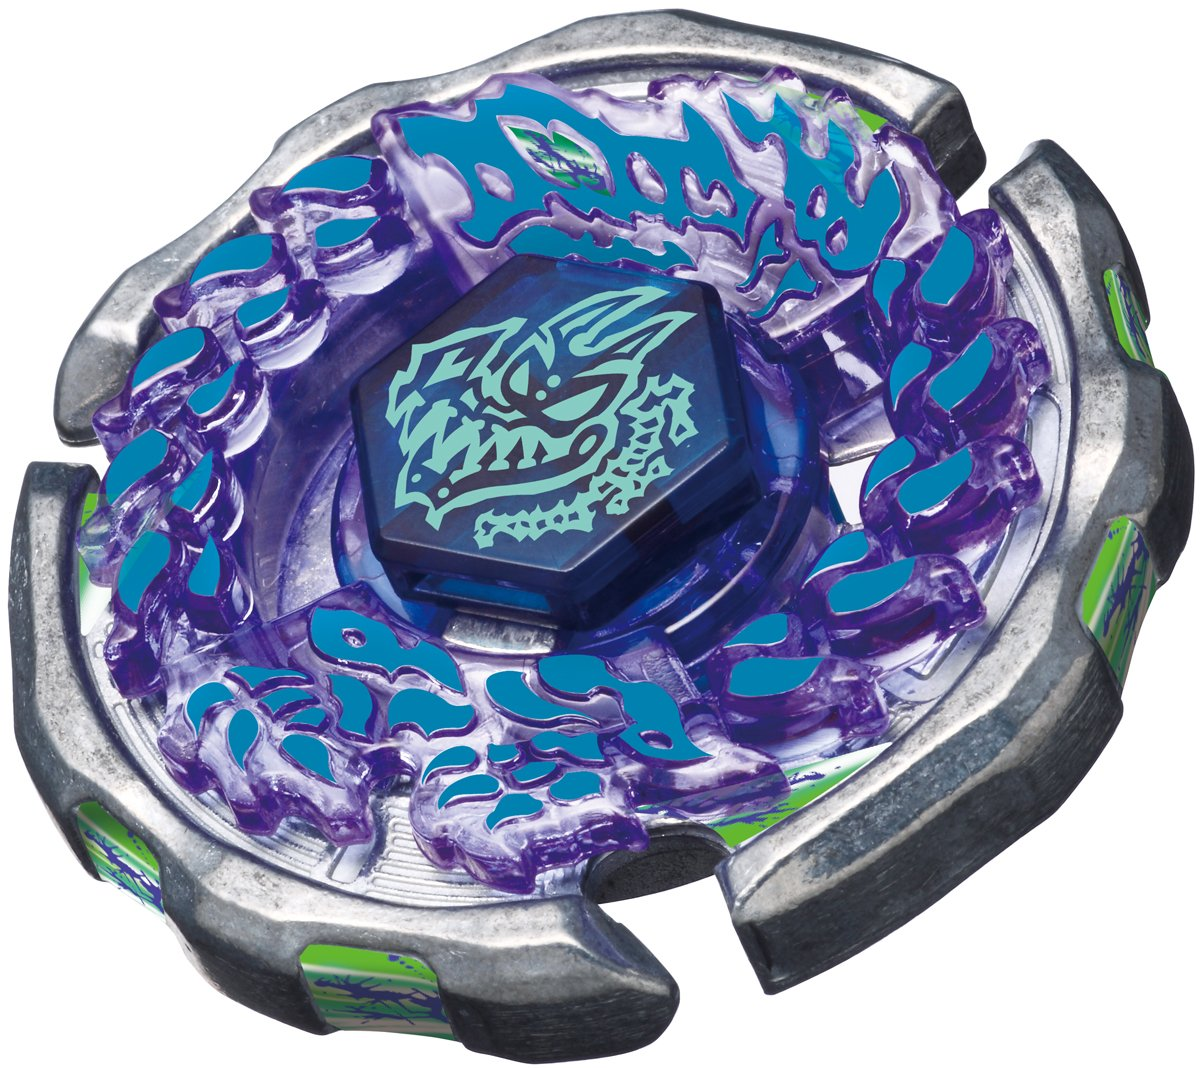 Beyblades #BB91 JAPANESE 2010 Metal Fusion Battle Top Booster Ray Gil 100RSF Japan VideoGames BB-377399